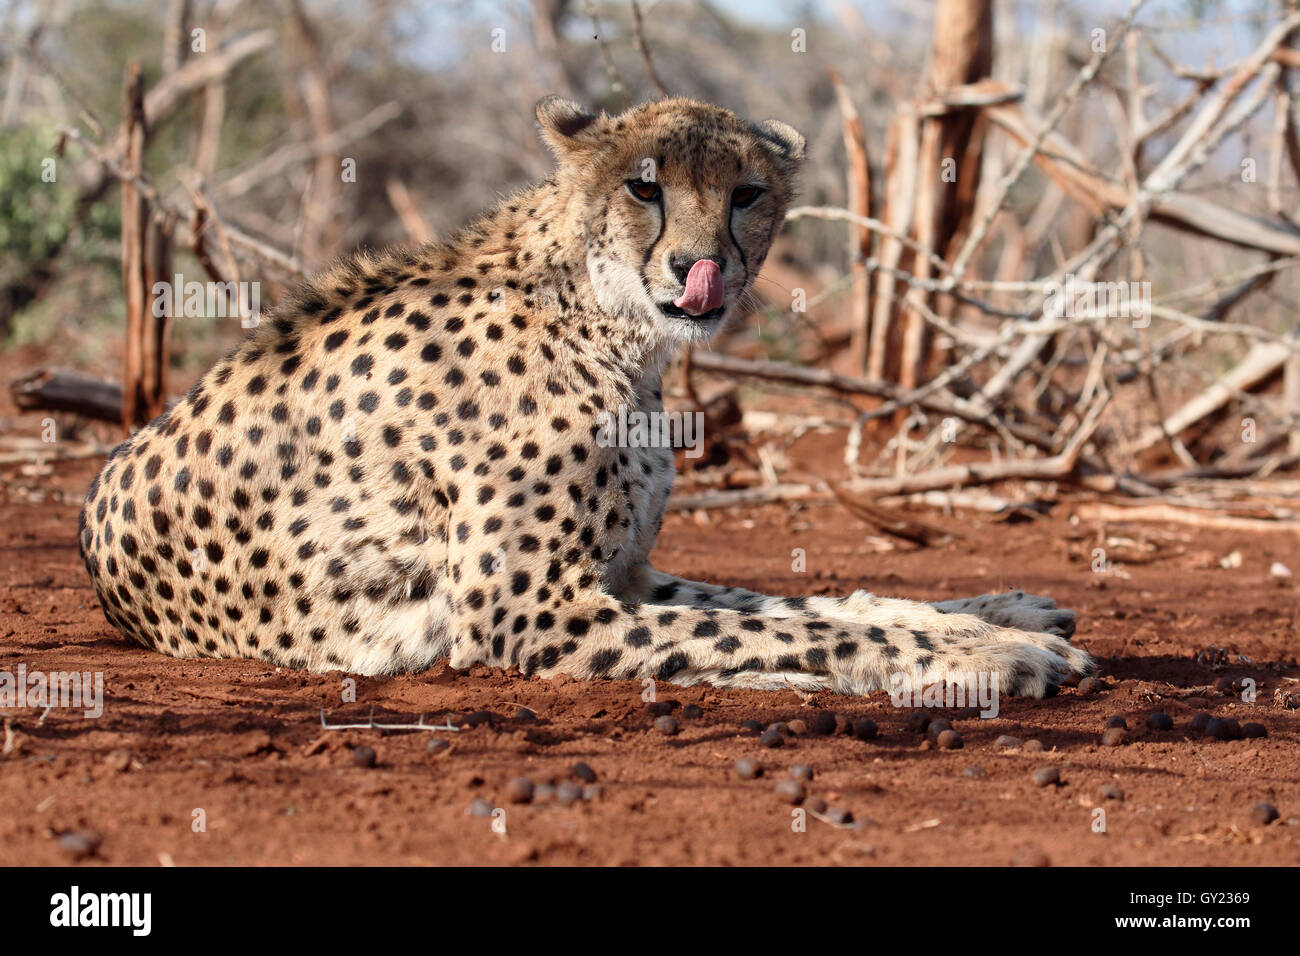 Cheetah, Acinonyx jubatus, single cat, South Africa, August 2016 - Stock Image